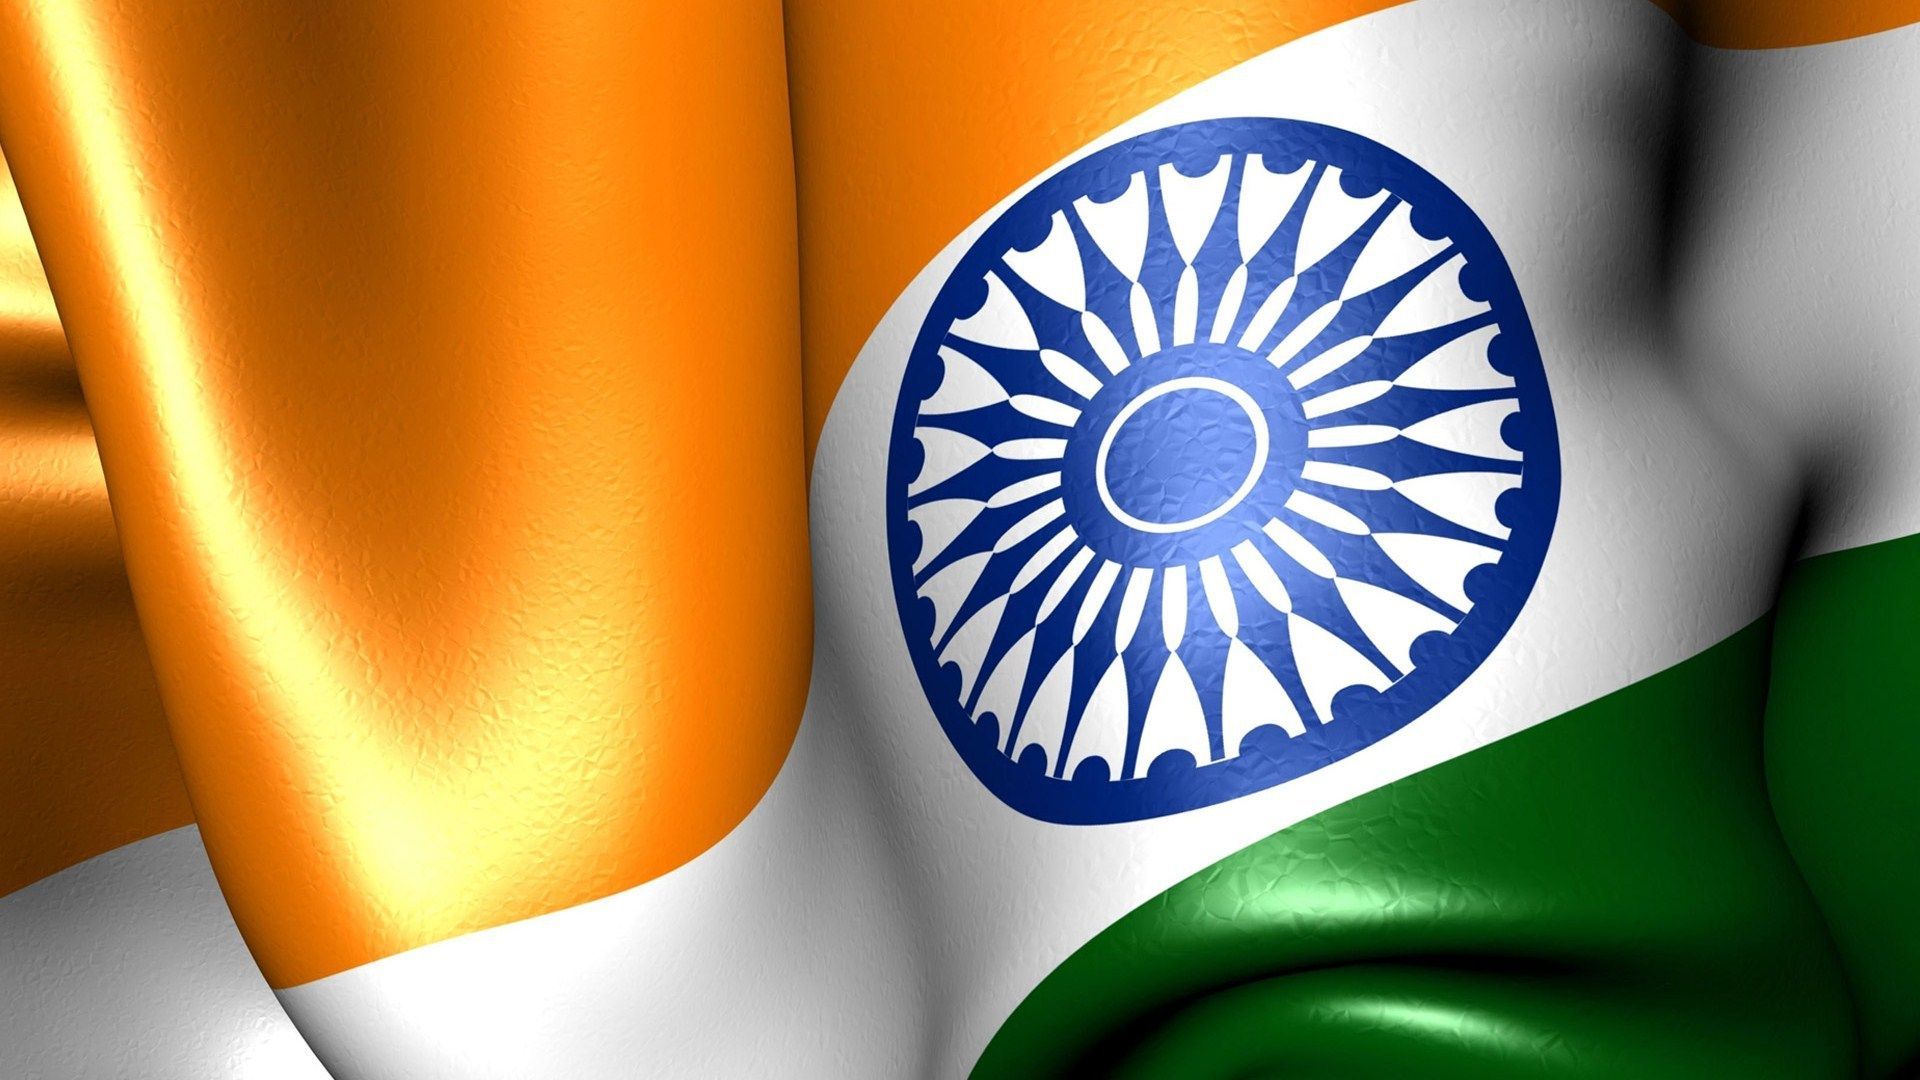 Indian Flag 4k Wallpaper: Download Indian Flag HD Images, Wallpapers, Photos, And